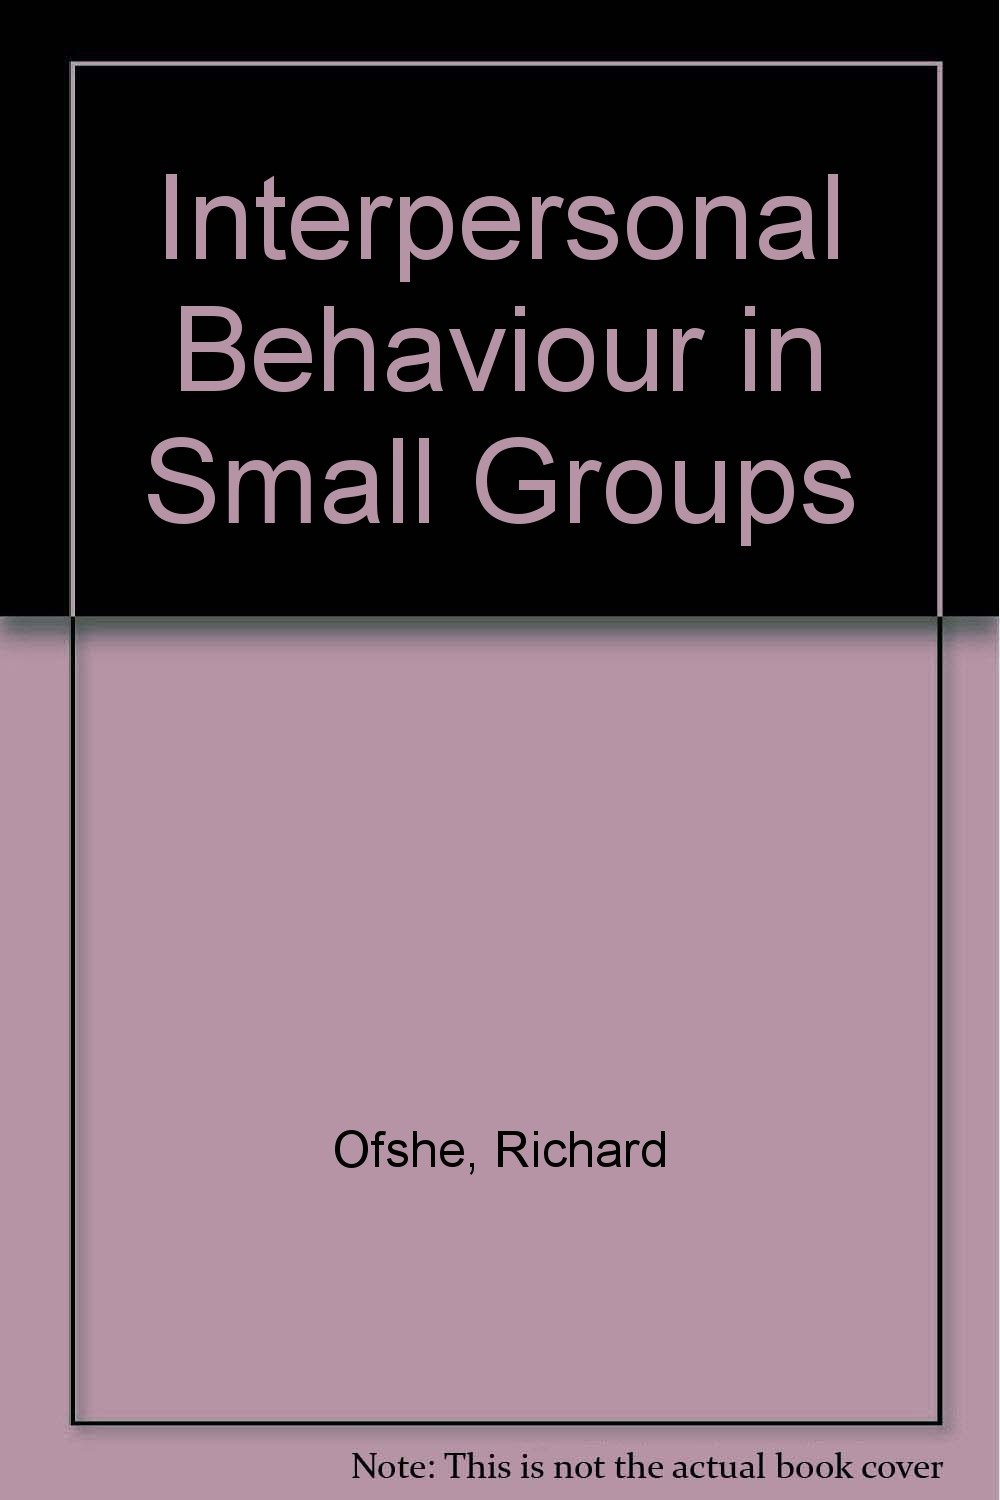 Interpersonal Behaviour in Small Groups: Richard Ofshe